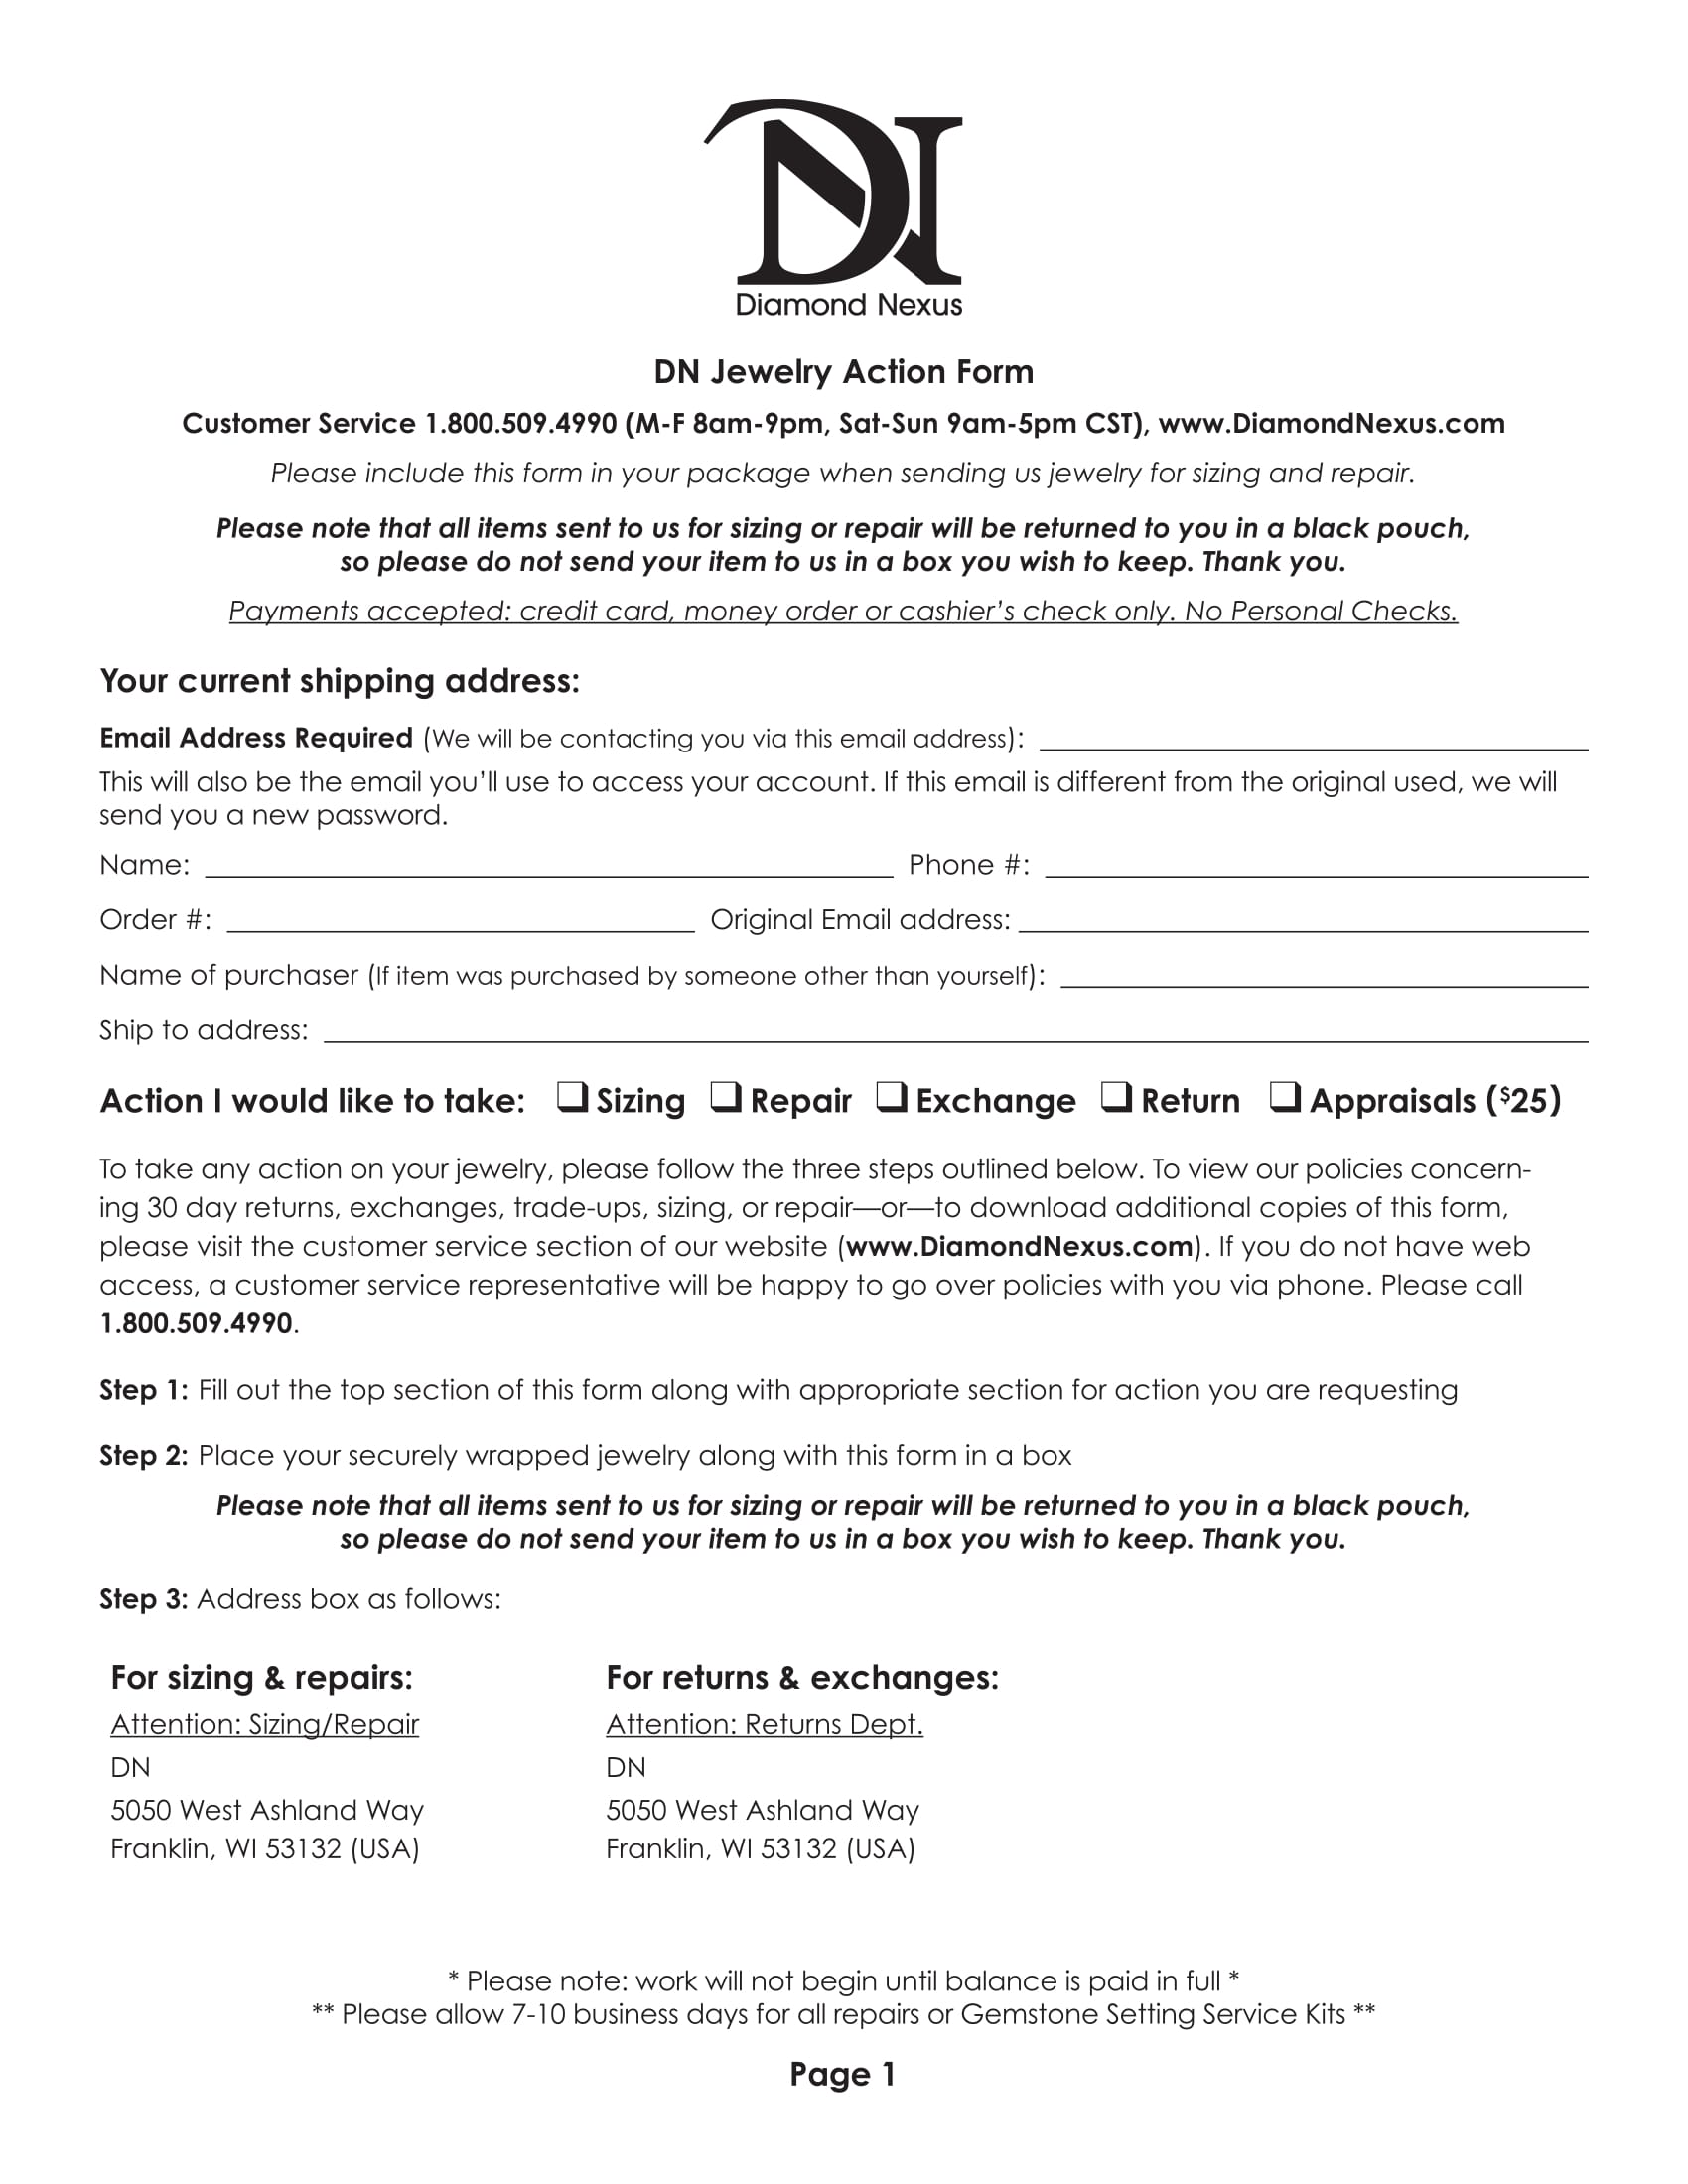 jewelry appraisal form template - 3 jewelry appraisal valuation and action forms